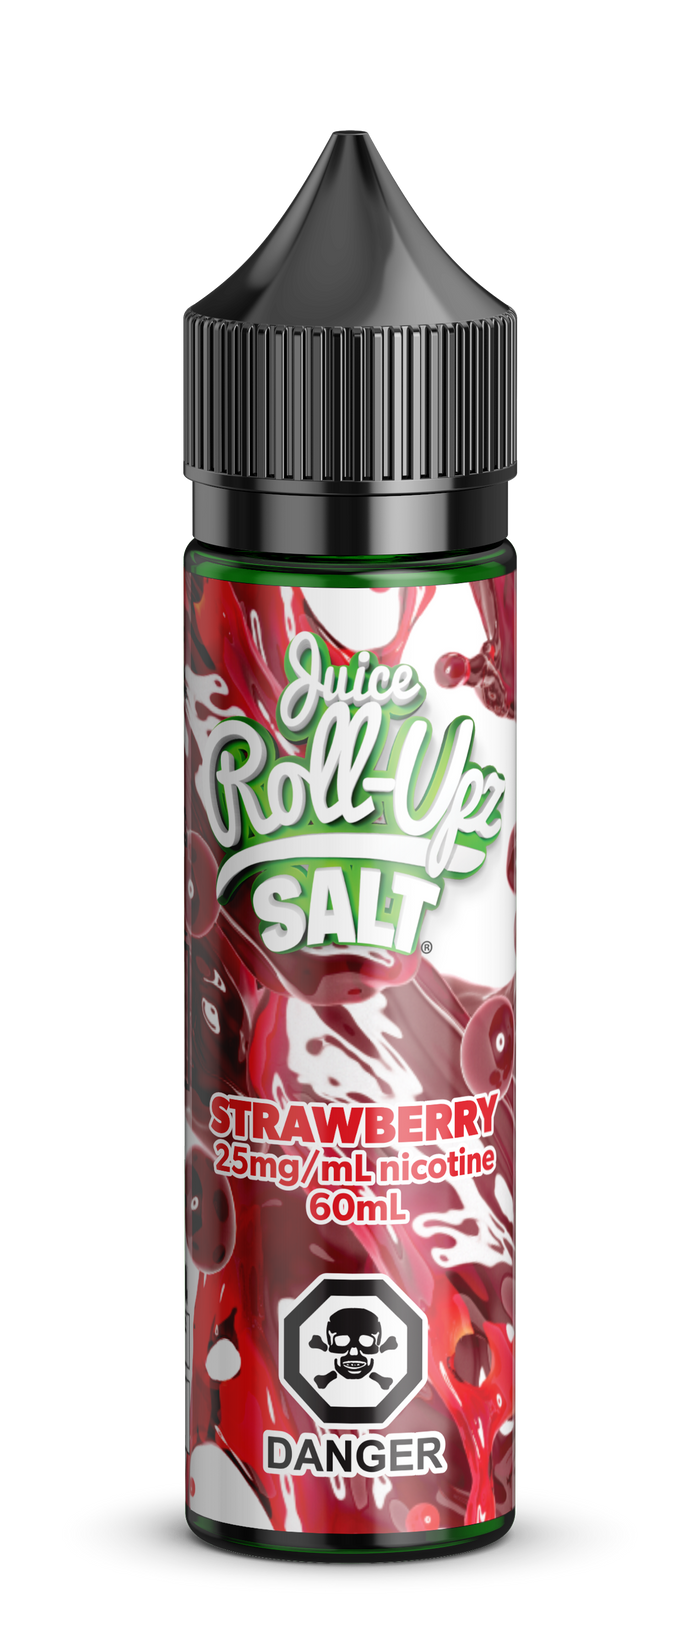 STRAWBERRY ROLL UPZ SALT